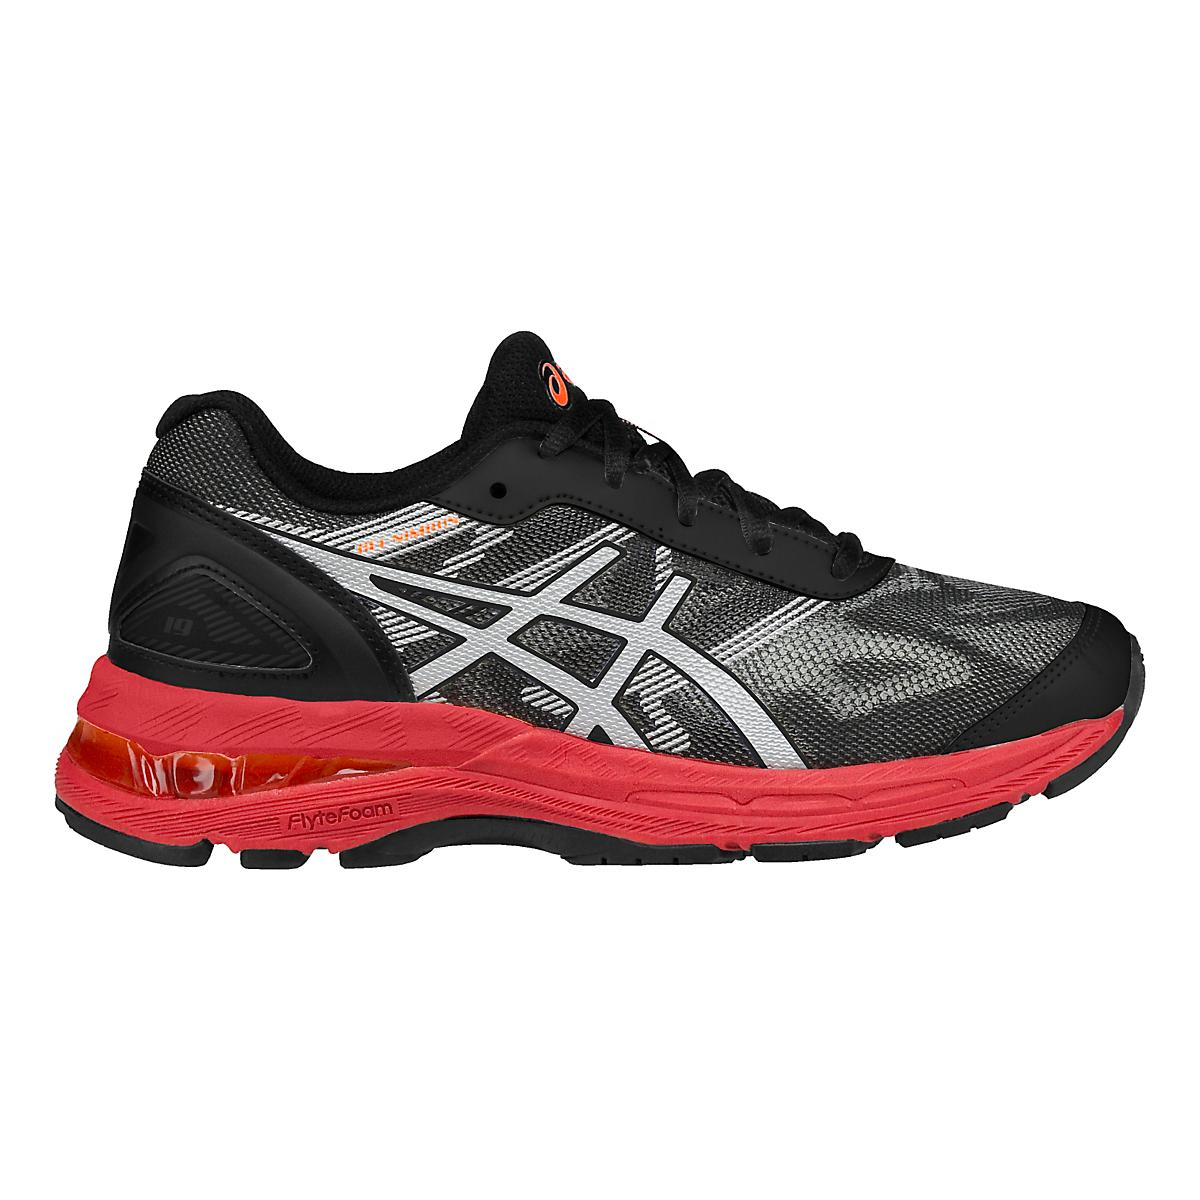 9cc67f028 Kids ASICS GEL-Nimbus 19 Running Shoe